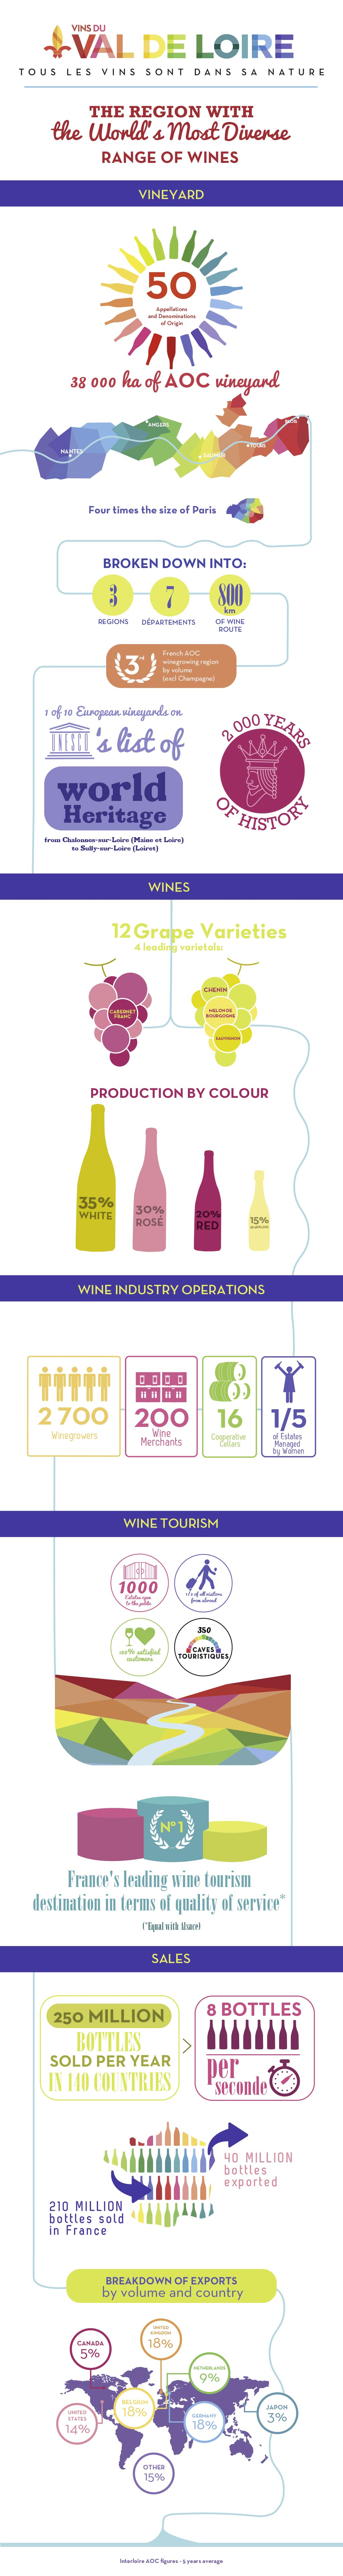 The key figures of the Loire Valley, its wines, its vineyards, its businesses and its oenotourism